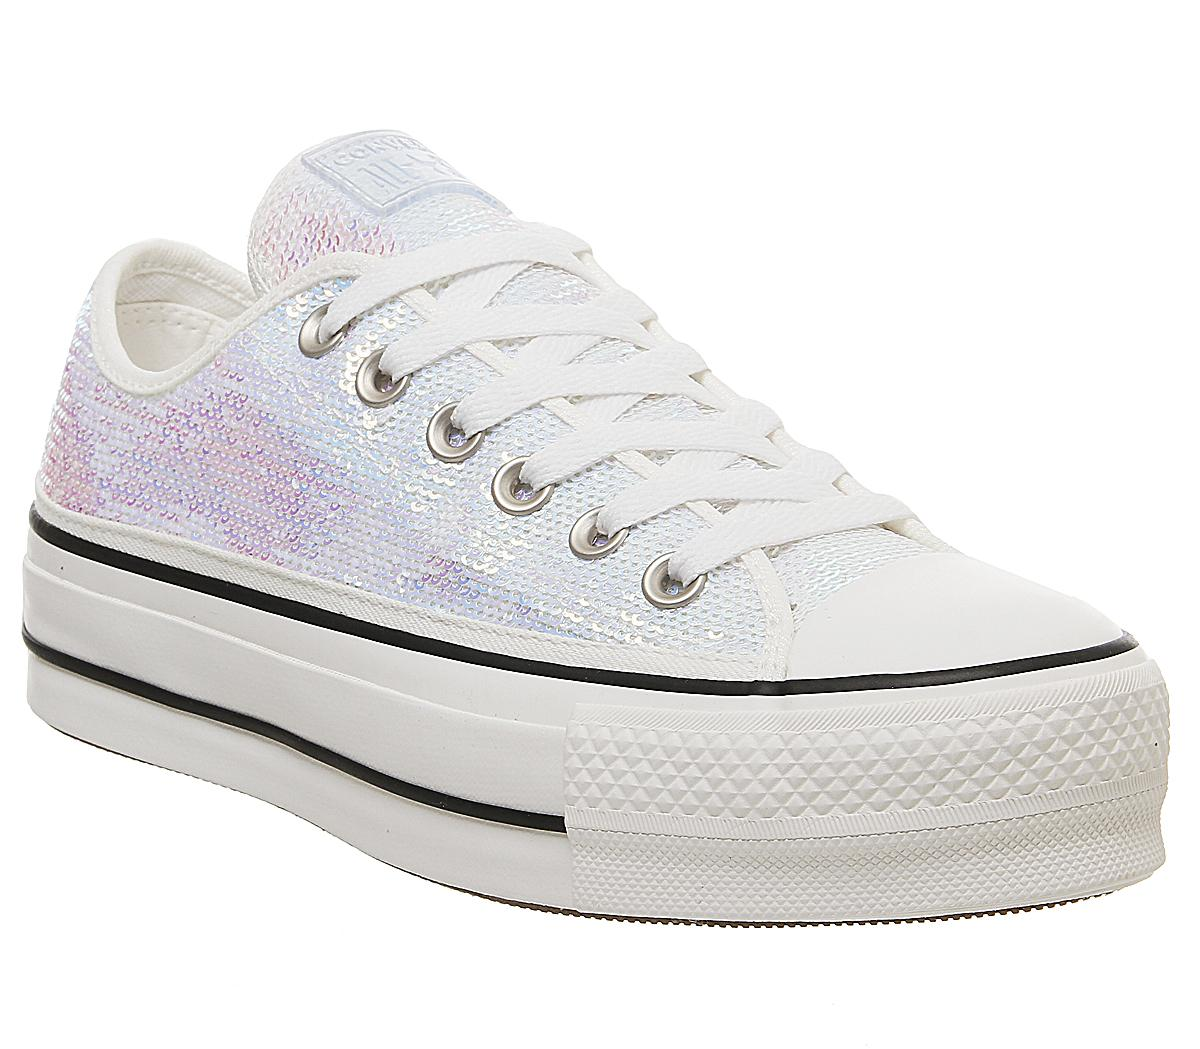 Converse All Star Lift Low Trainers